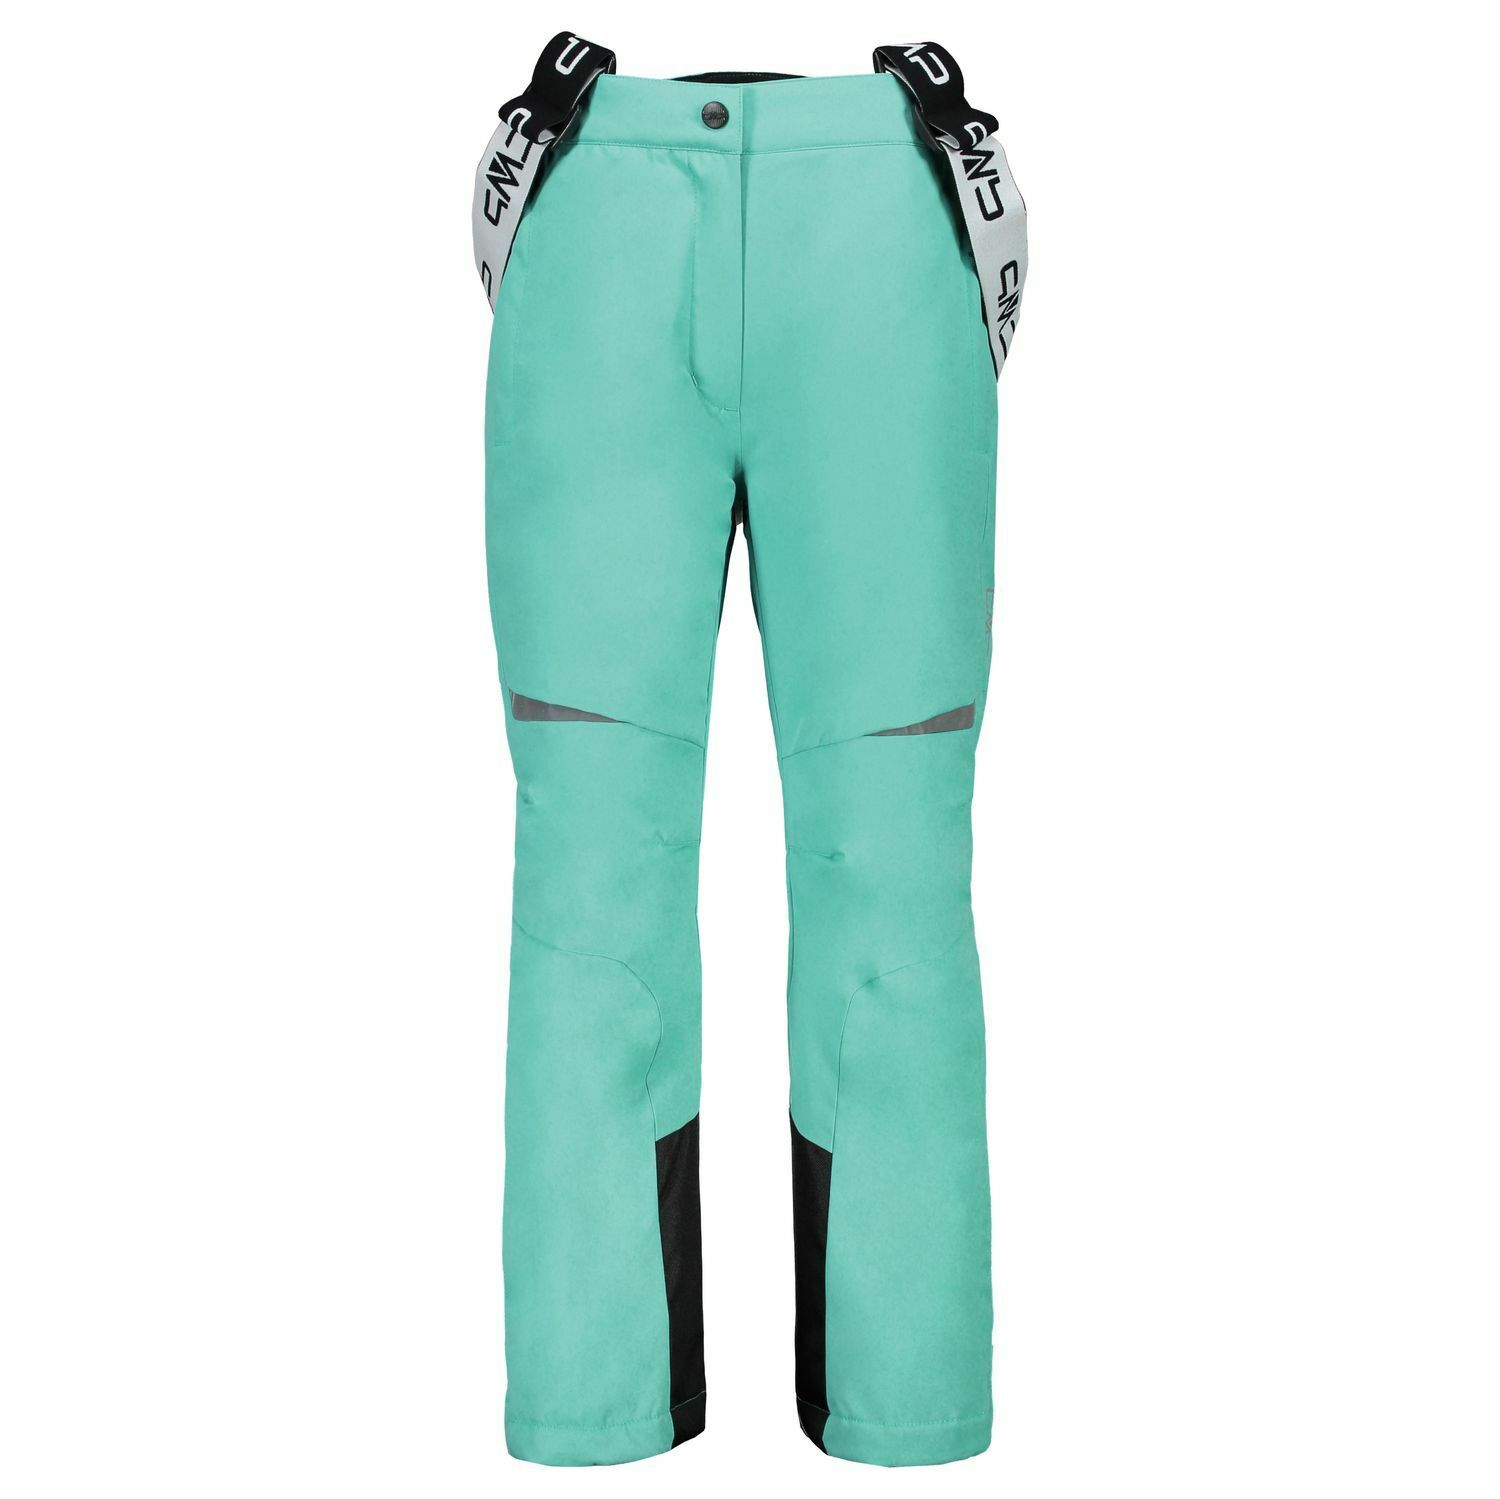 CMP Ski Trousers Snowboard Trousers Girl Trousers Turquoise Windproof  Waterproof  exclusive designs